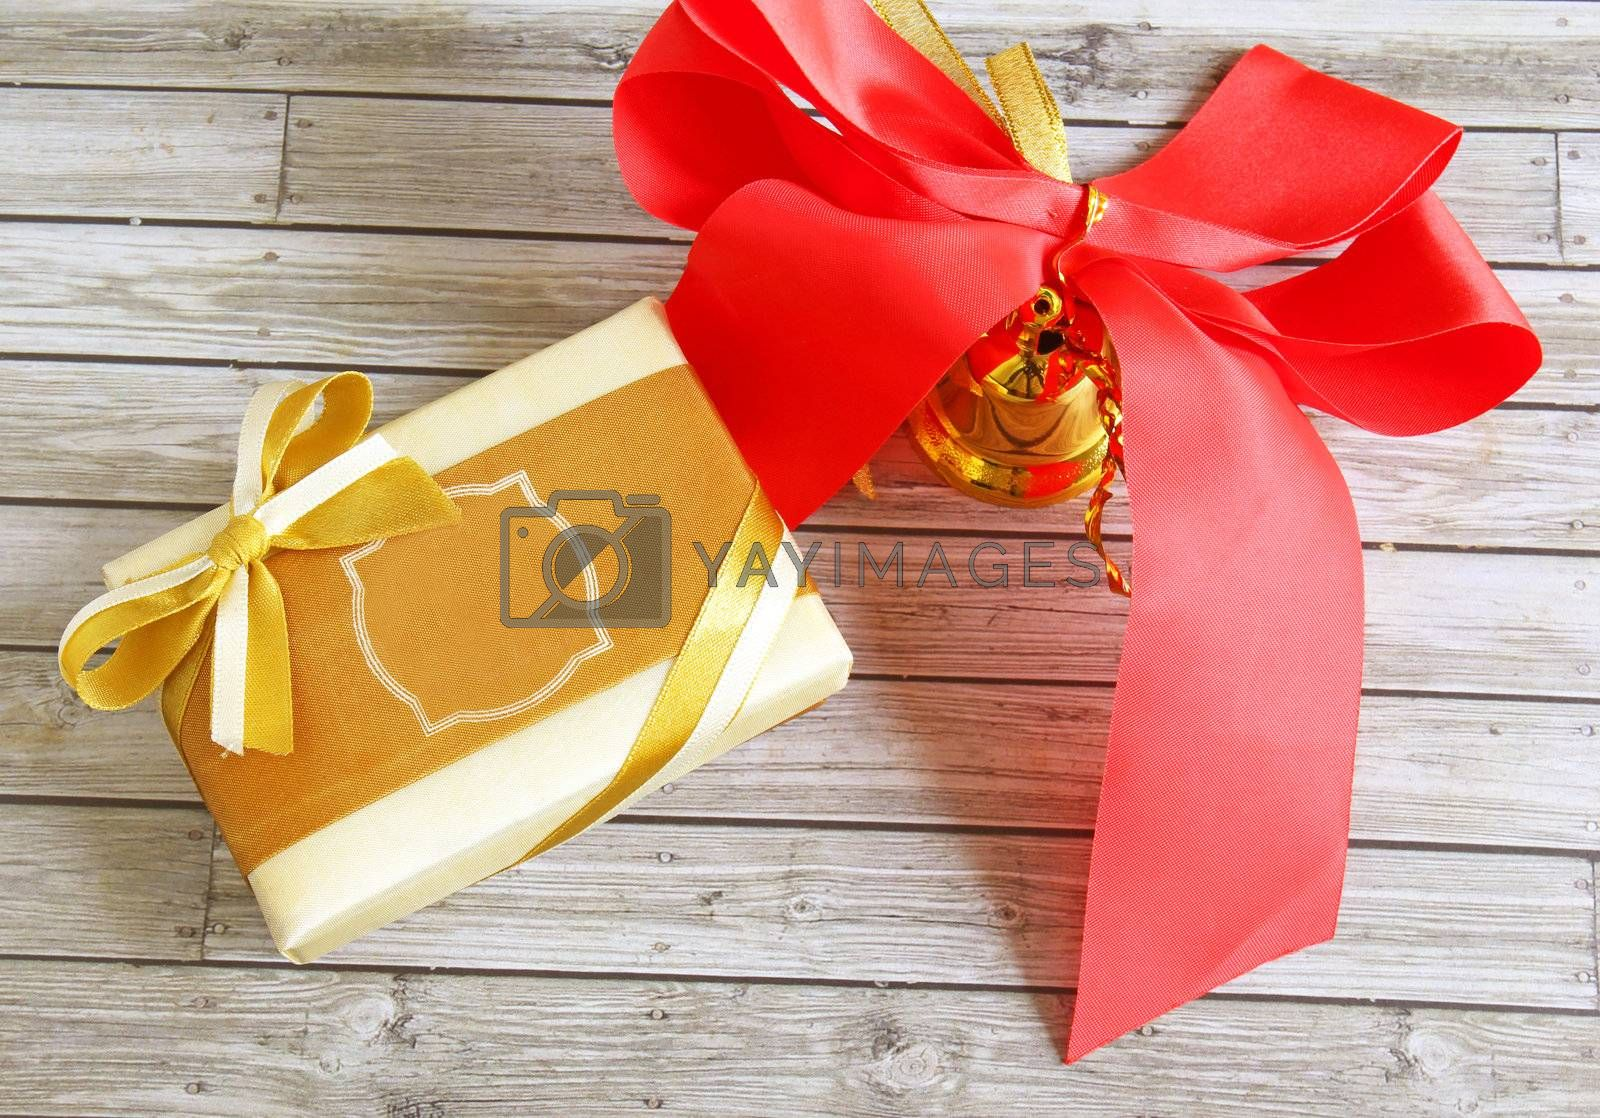 Gift box and red ribbon over wooden background  by nuchylee